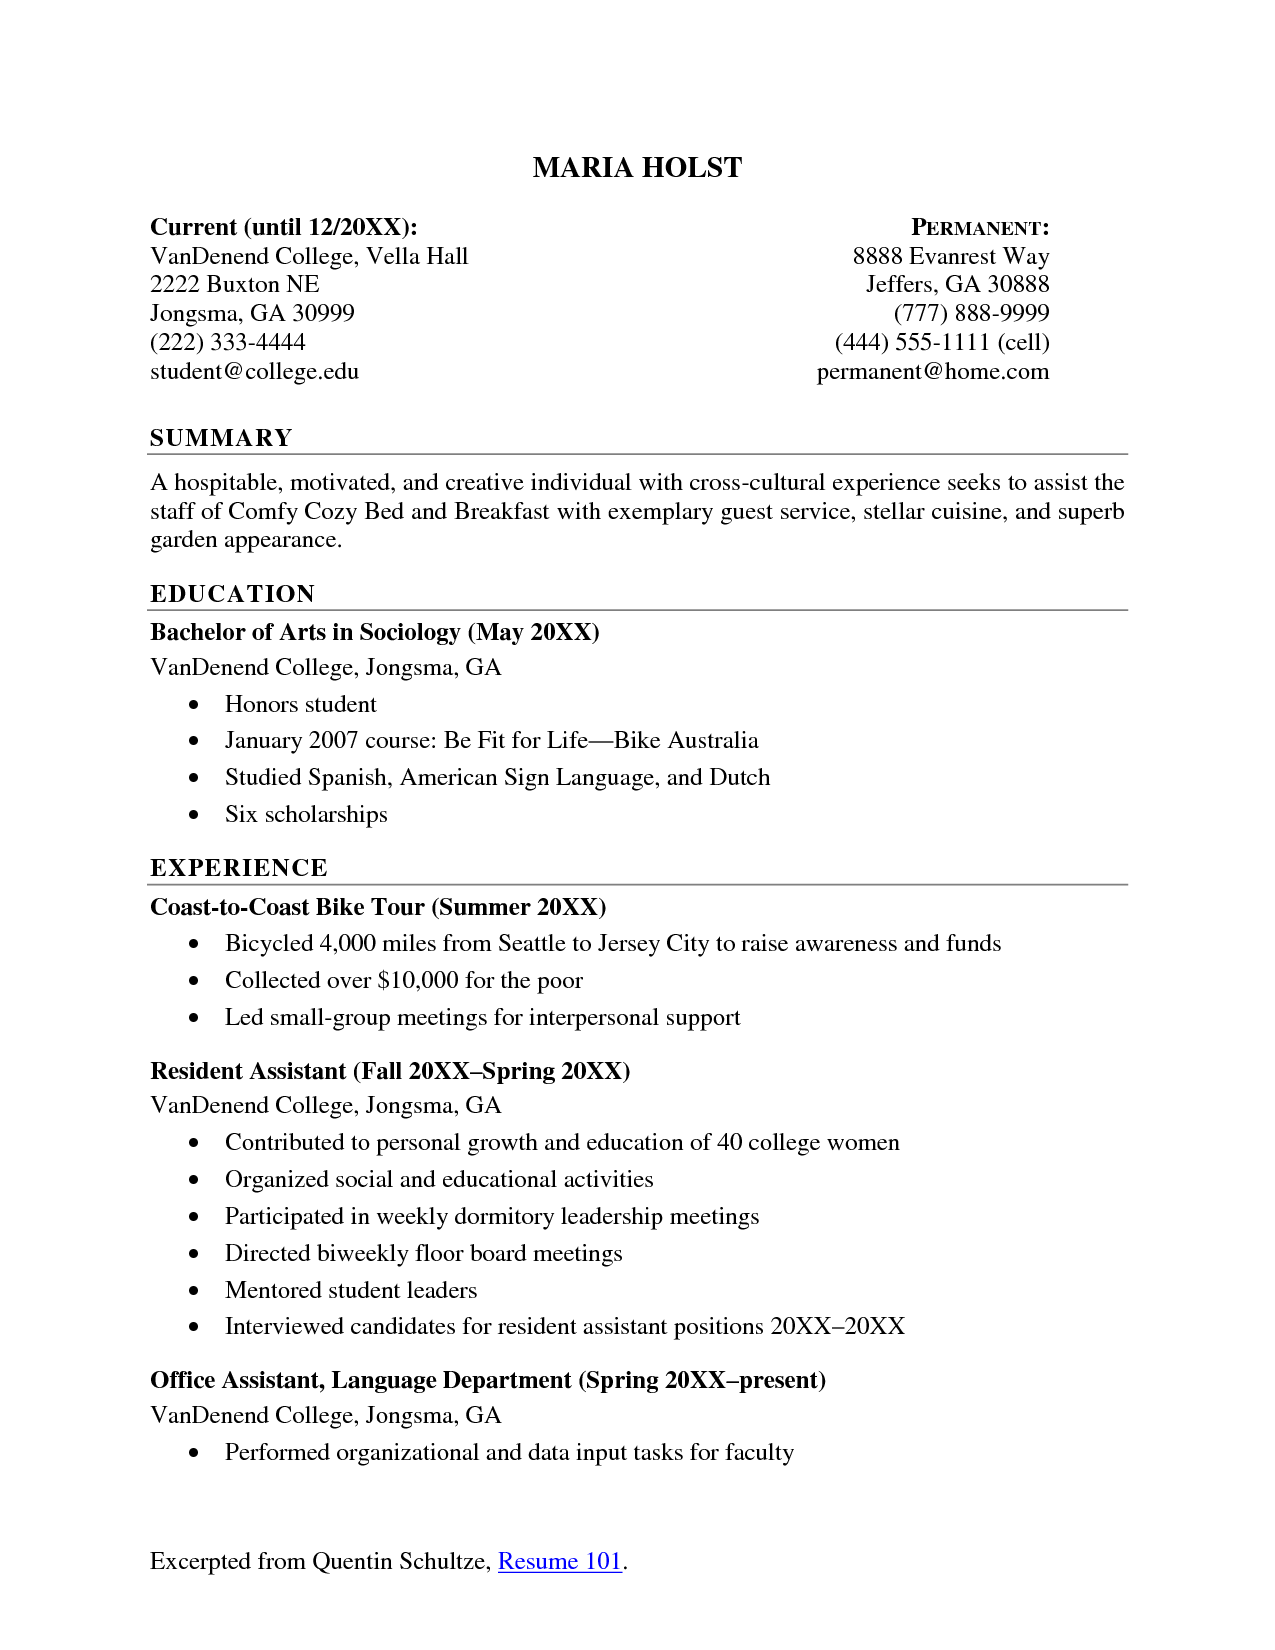 Resume Templates For College Students Sample Resume For College Student Supermamanscom  Httpwww